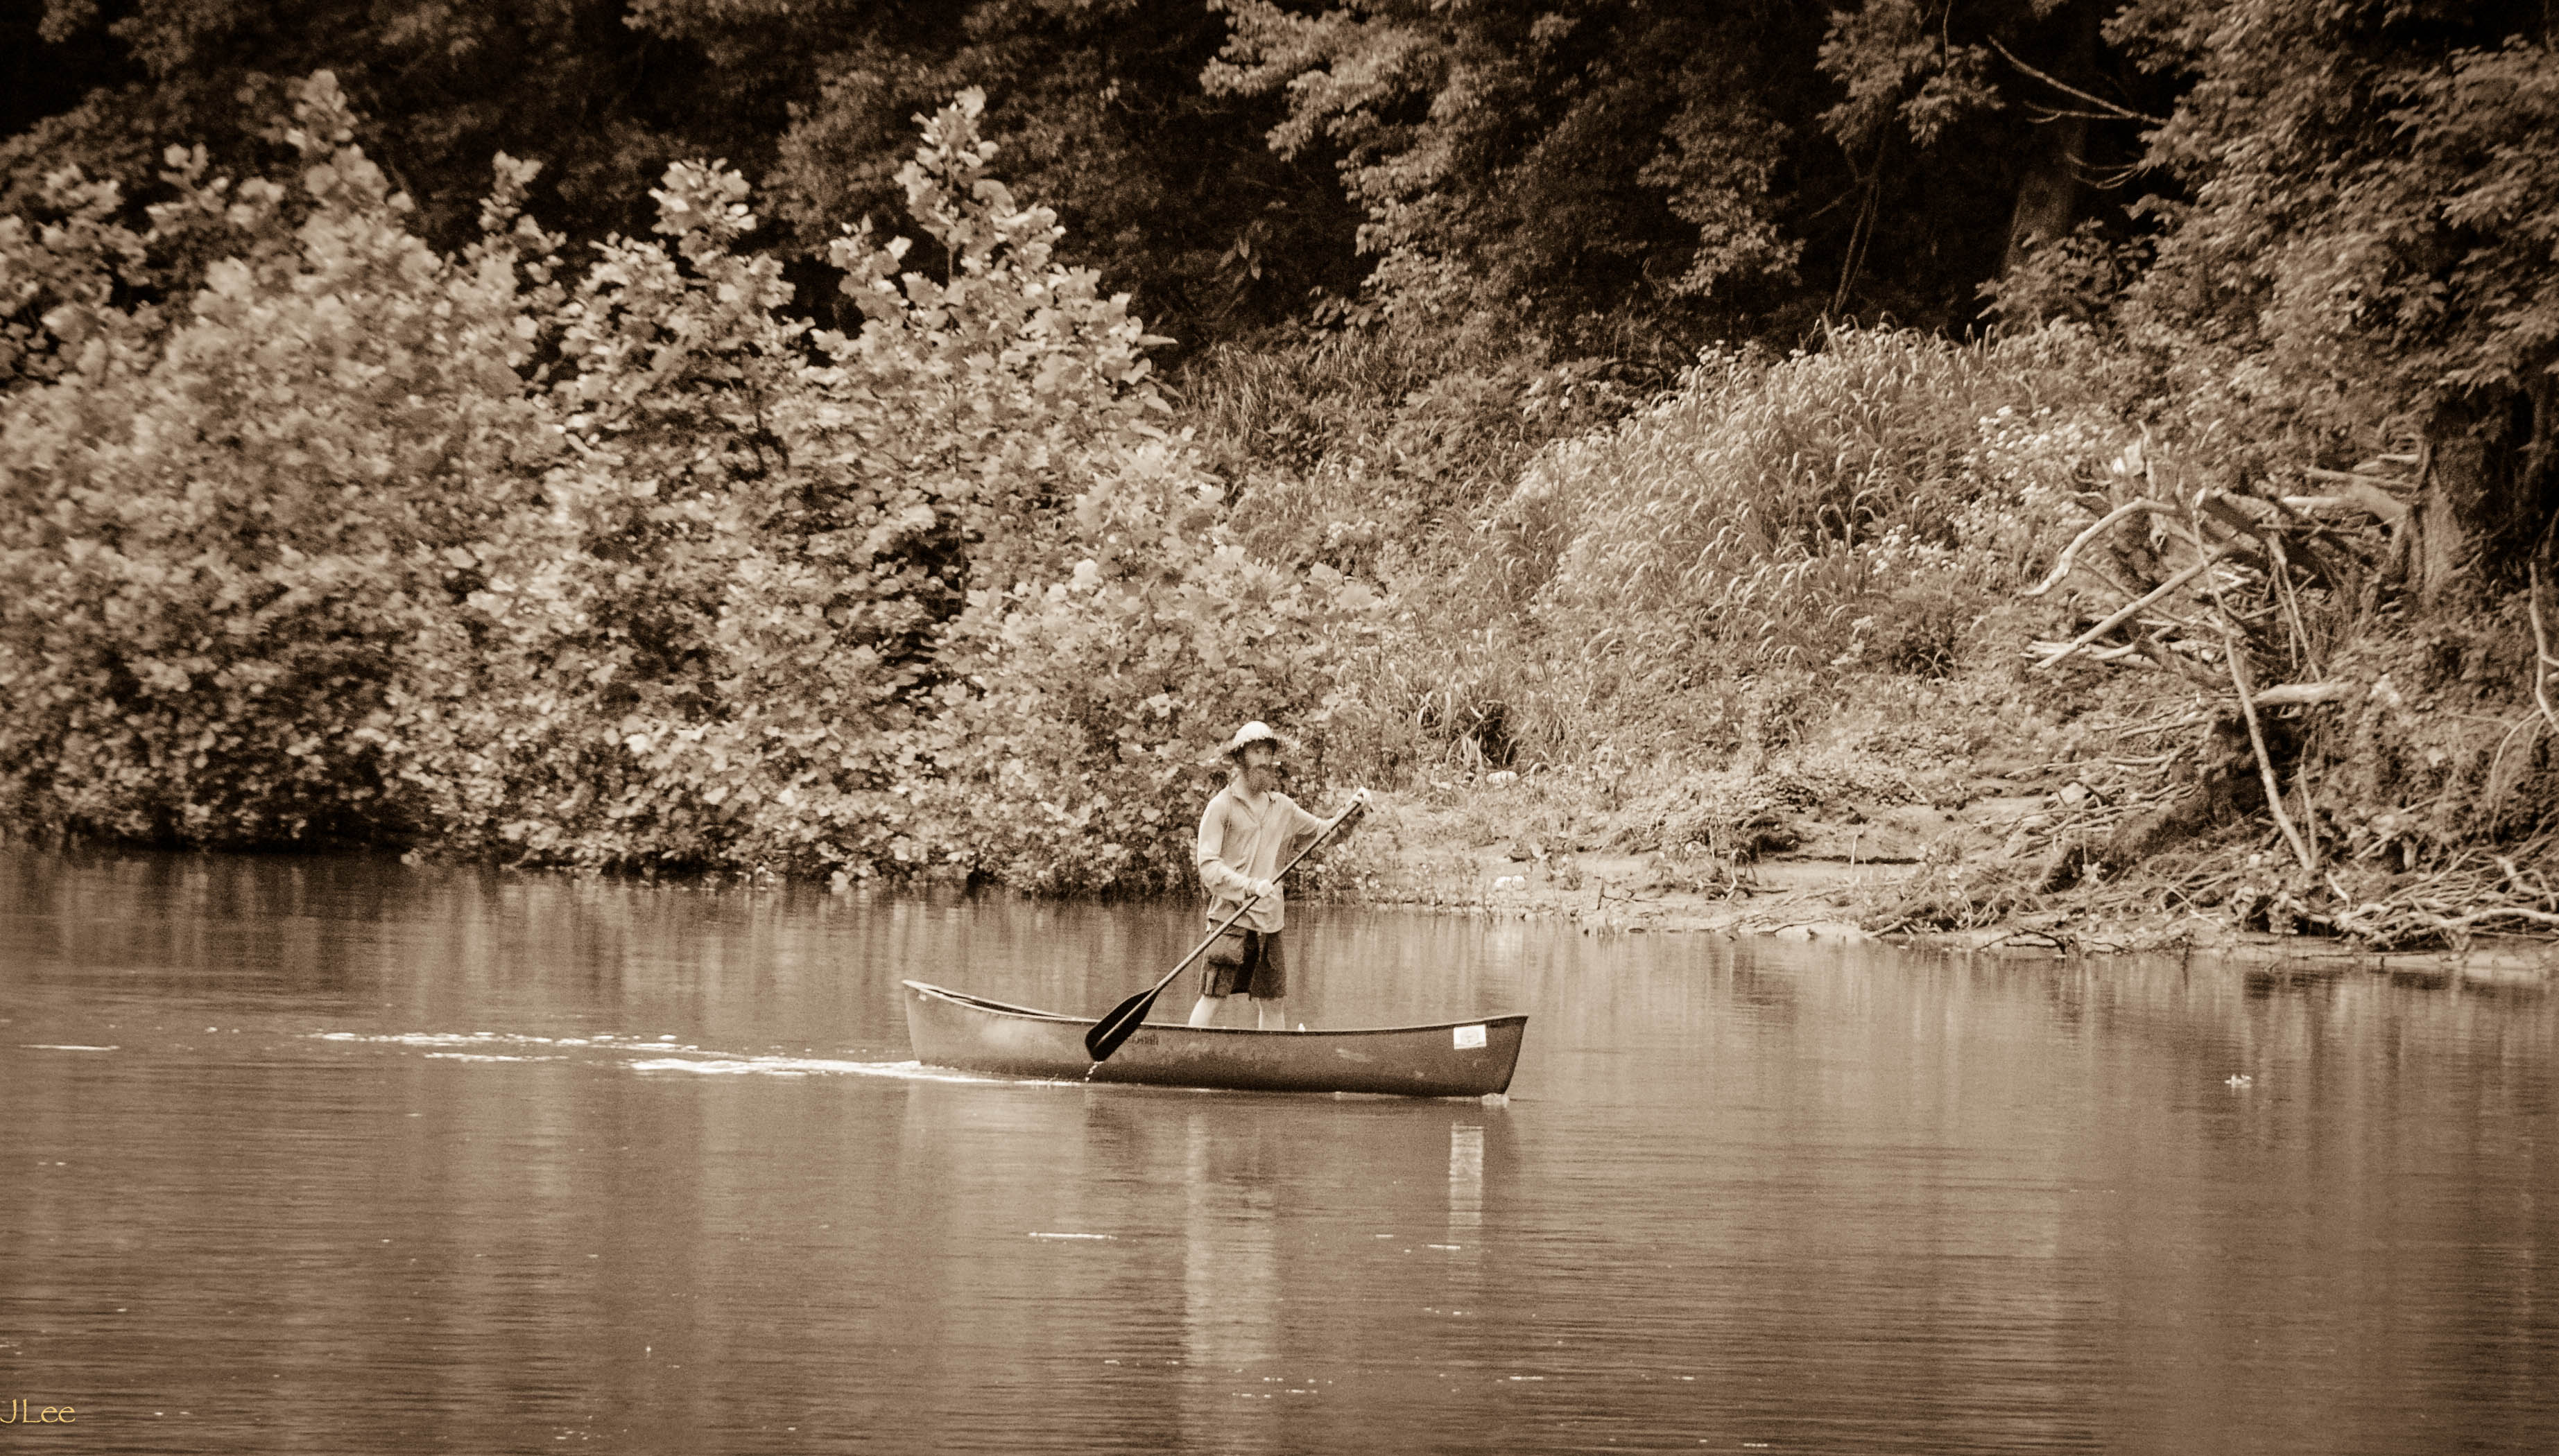 Huck Finn on Shenandoah